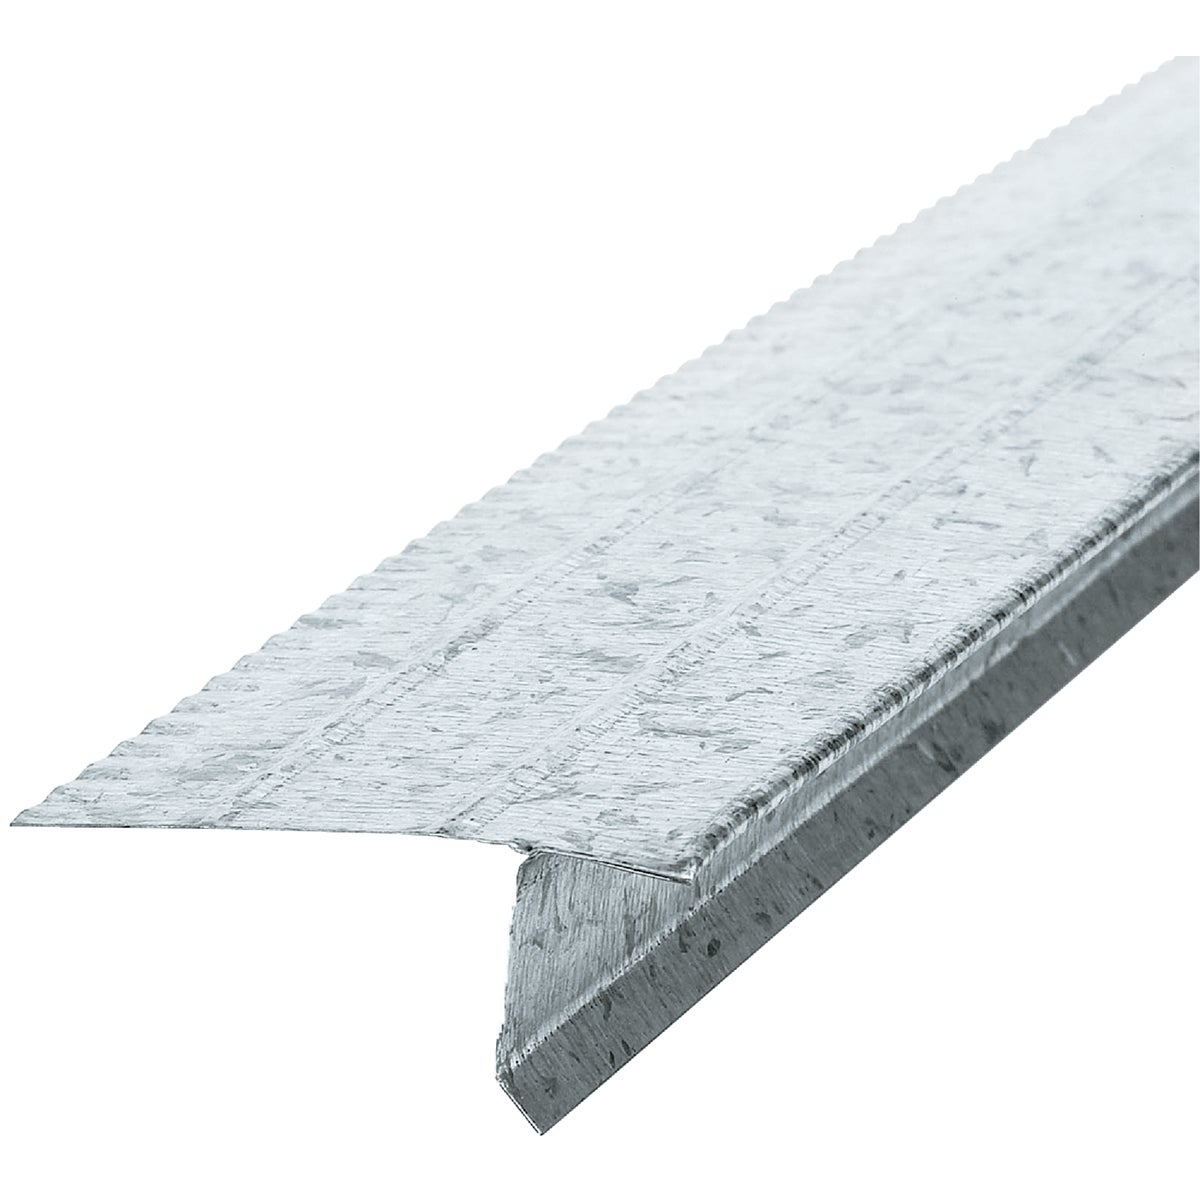 10' MILL GALV DRIP EDGE - 5601500120 by Amerimax Home Prod